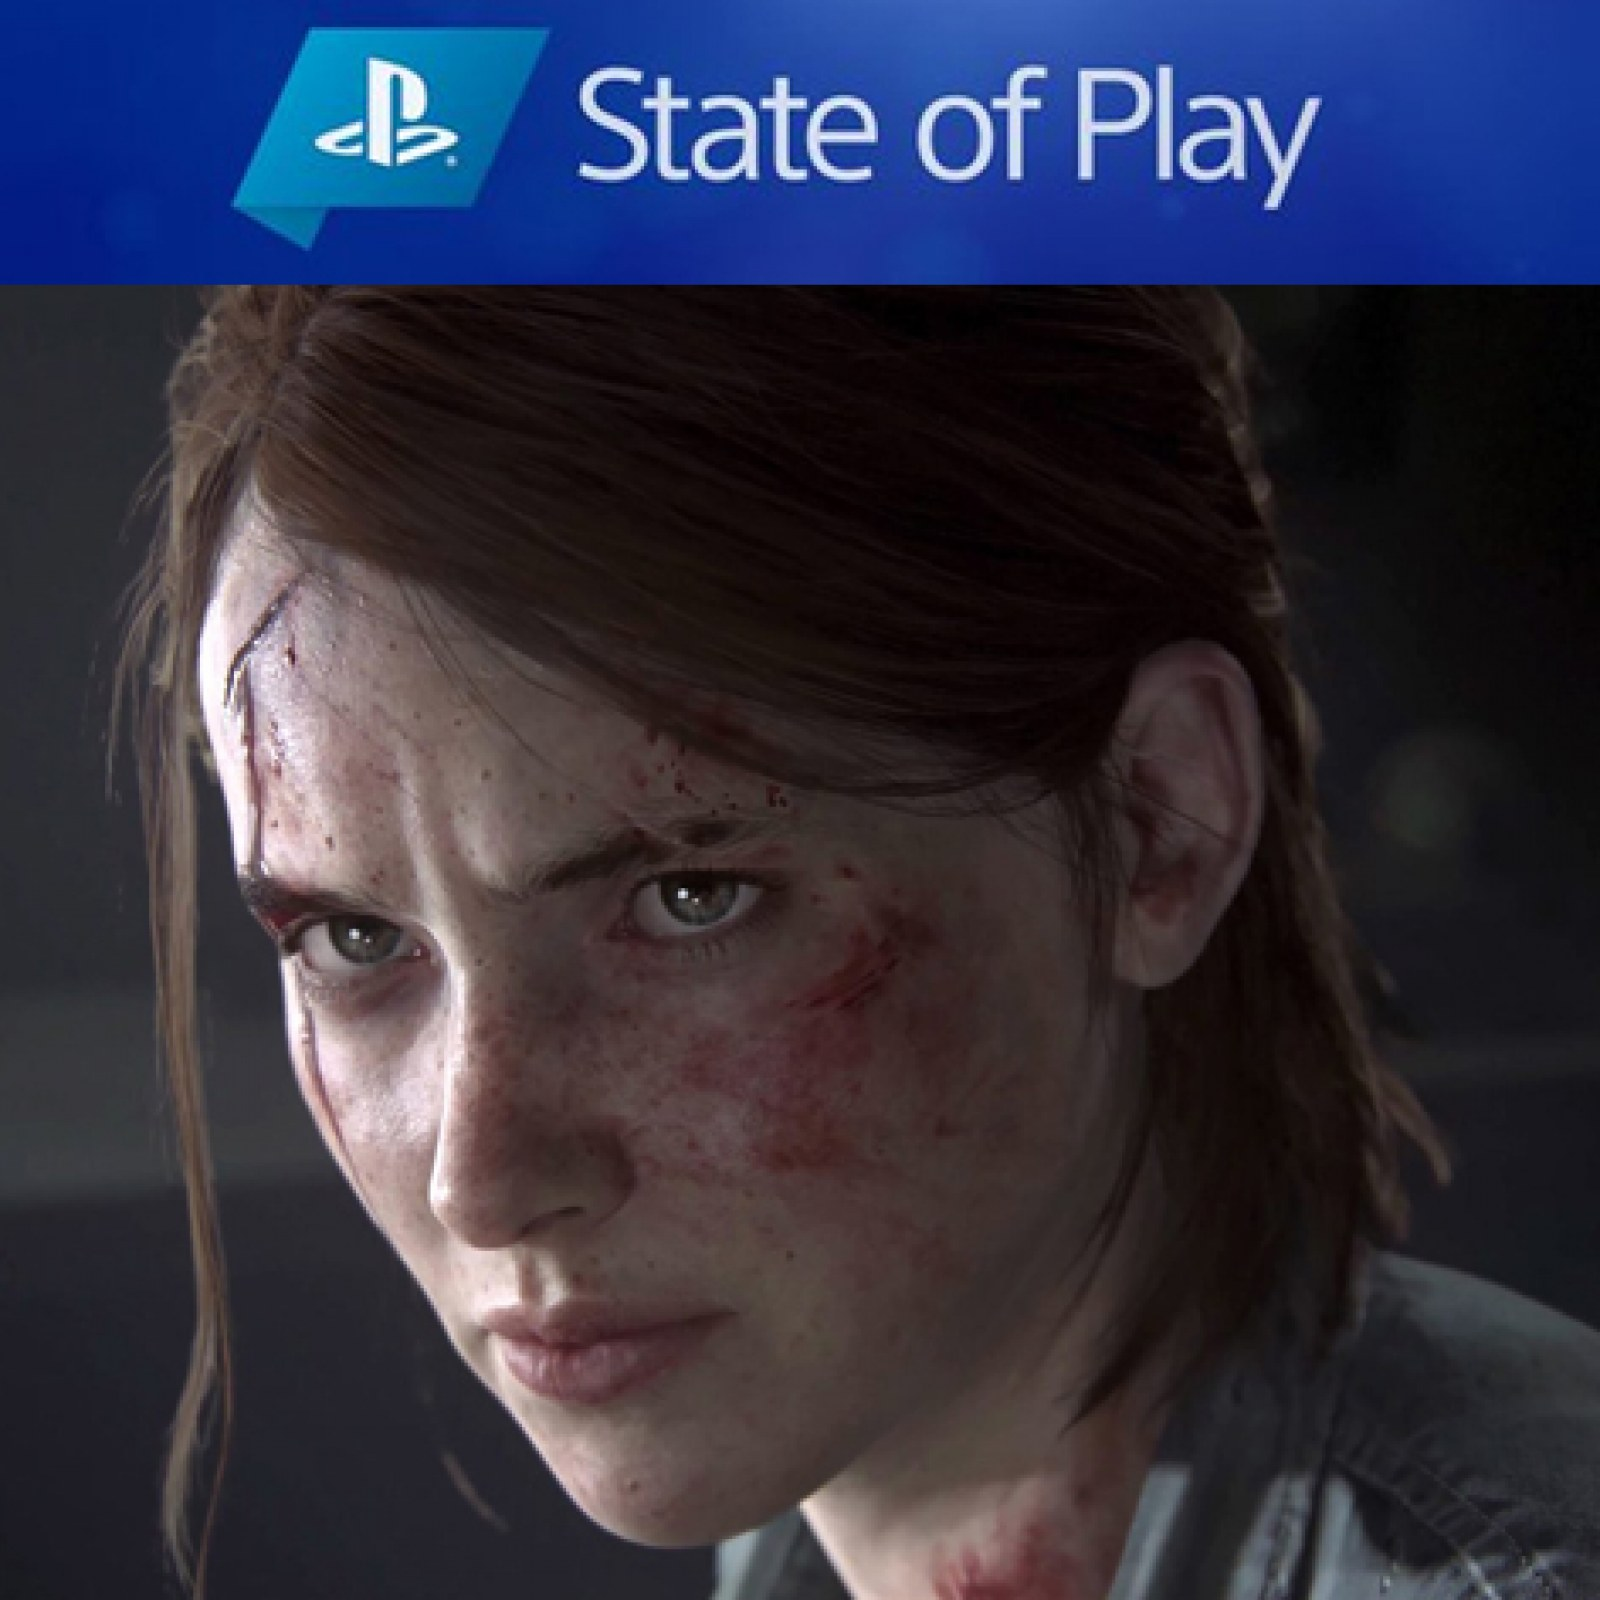 PlayStation State of Play: Start Time and How to Watch